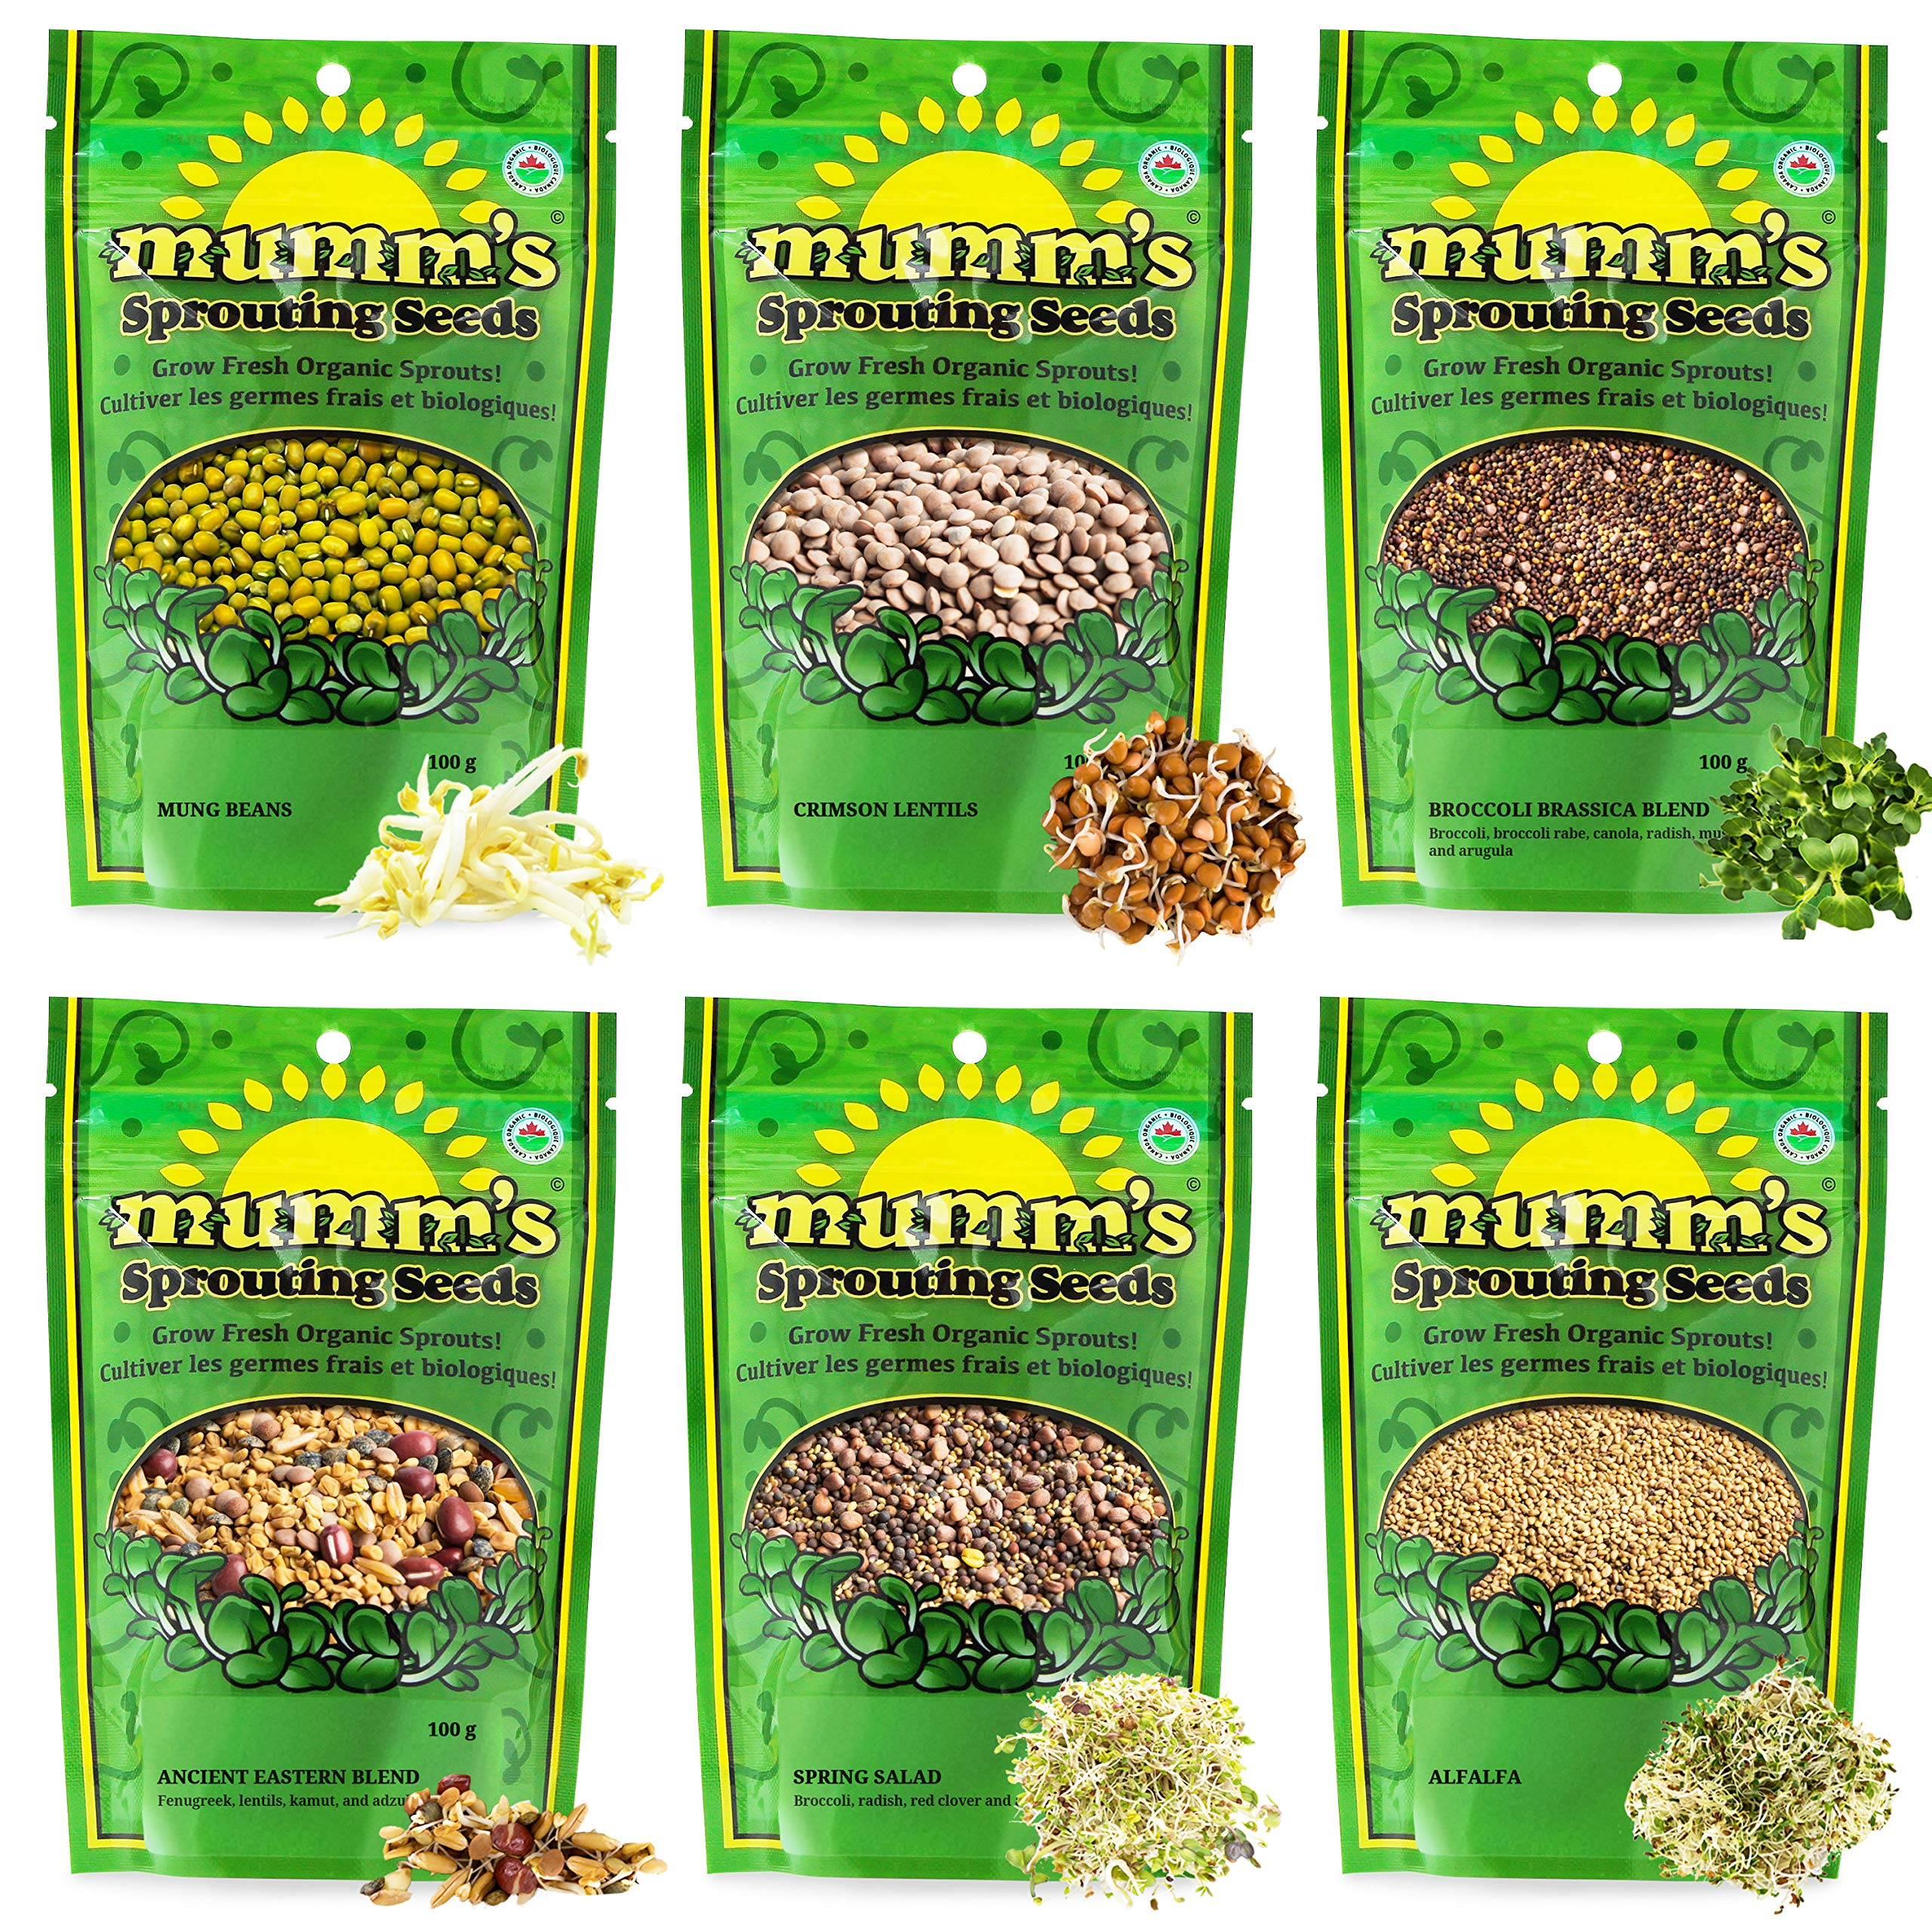 Mumm's Sprouting Seeds - Starter Sample Pack - 625 GR - Organic Sprout Seed Kit - Broccoli, Radish, Alfalfa, Mung Bean by Masontops